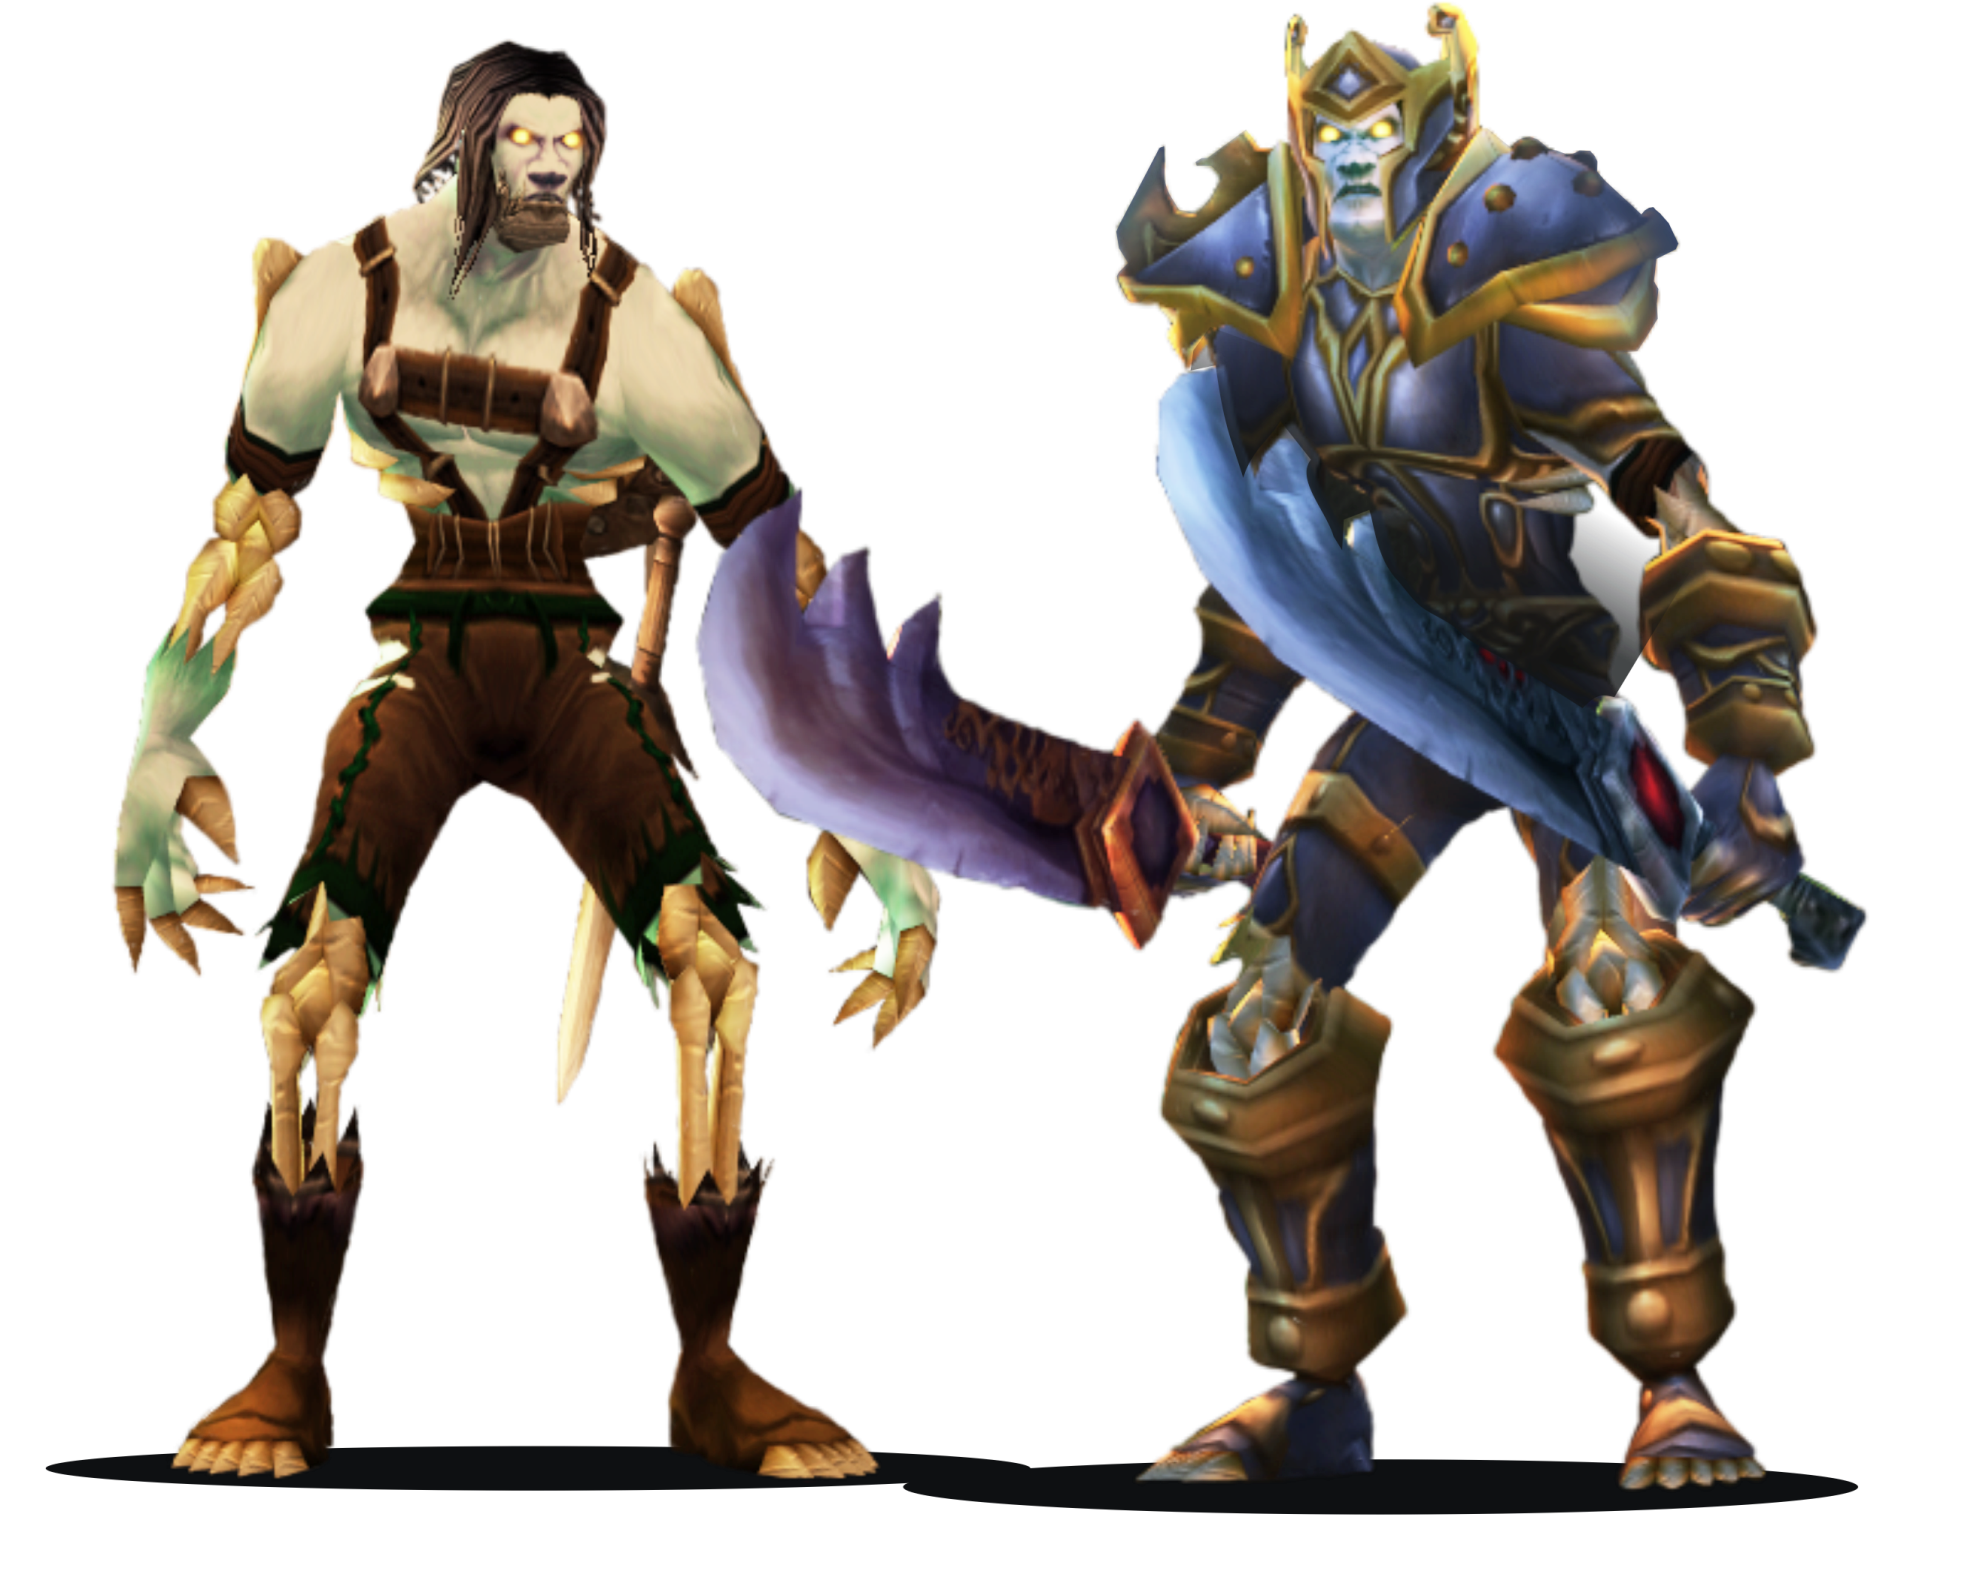 Buy gold and leveling private wow servers from Mojoviking